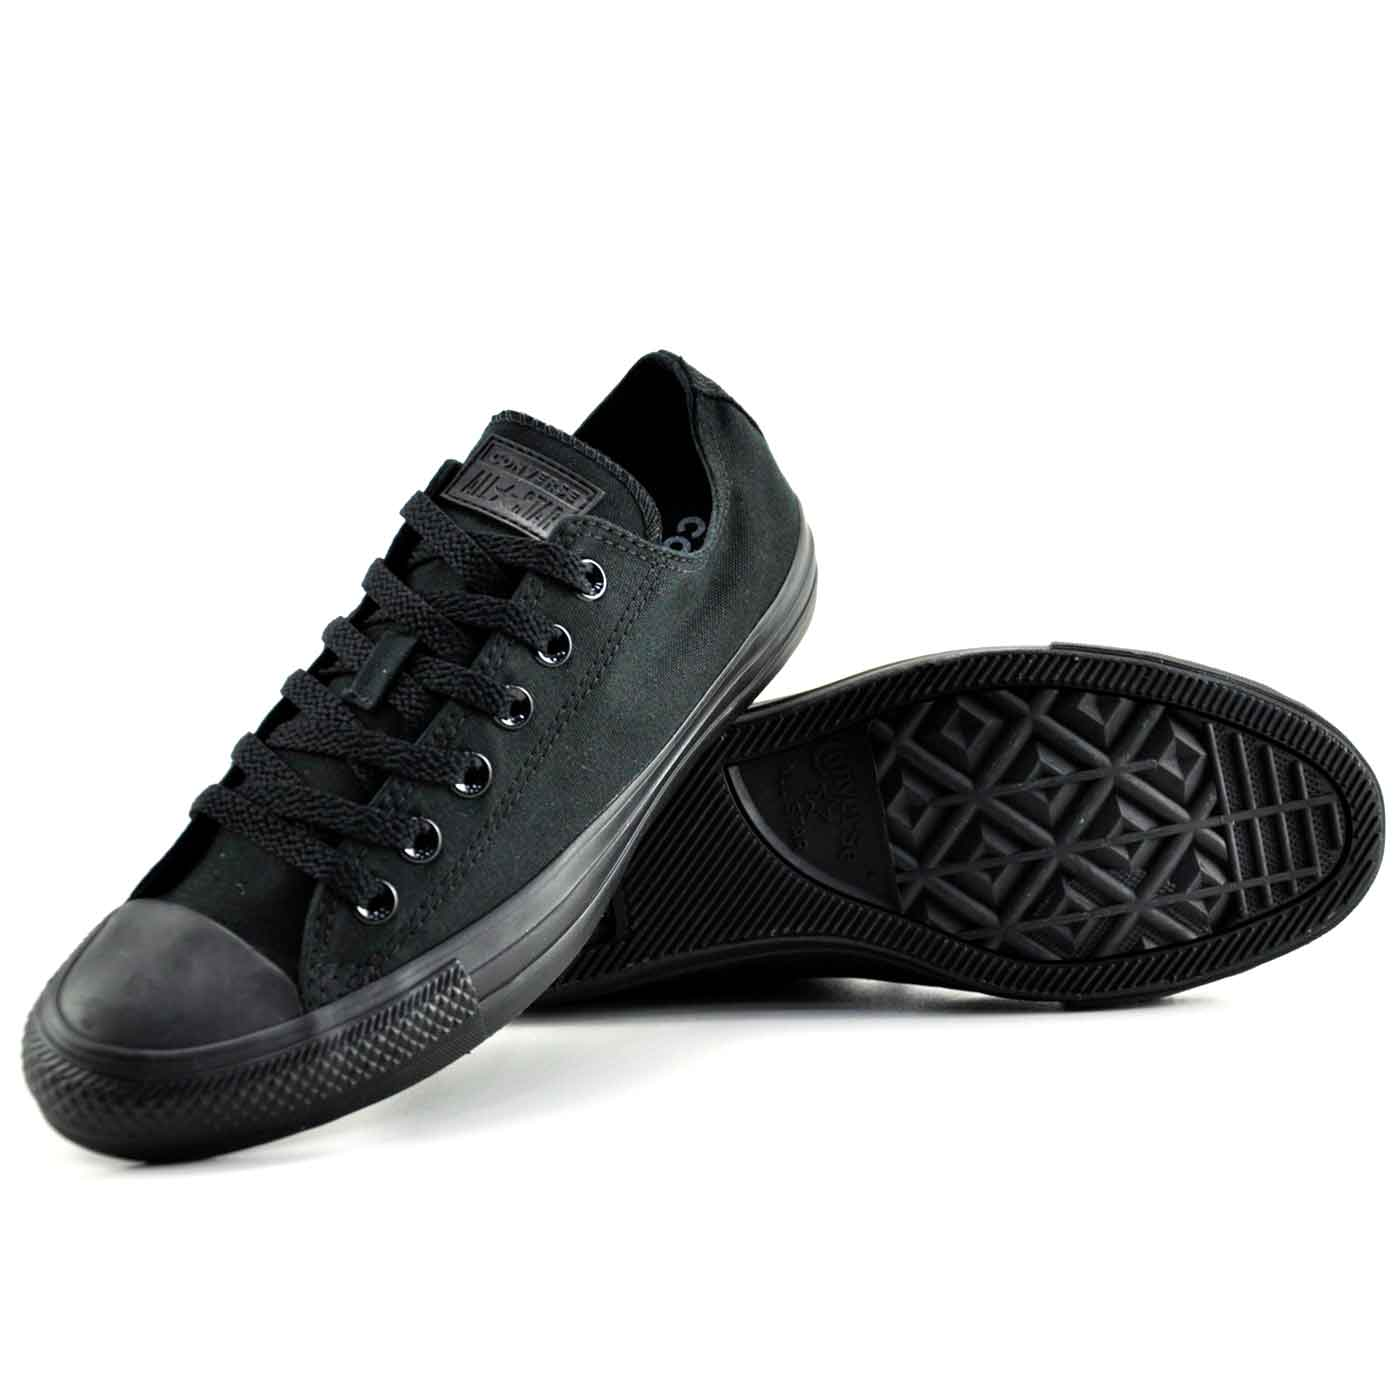 TENIS ALL STAR CONVERSE MONOCHROME - CT0446